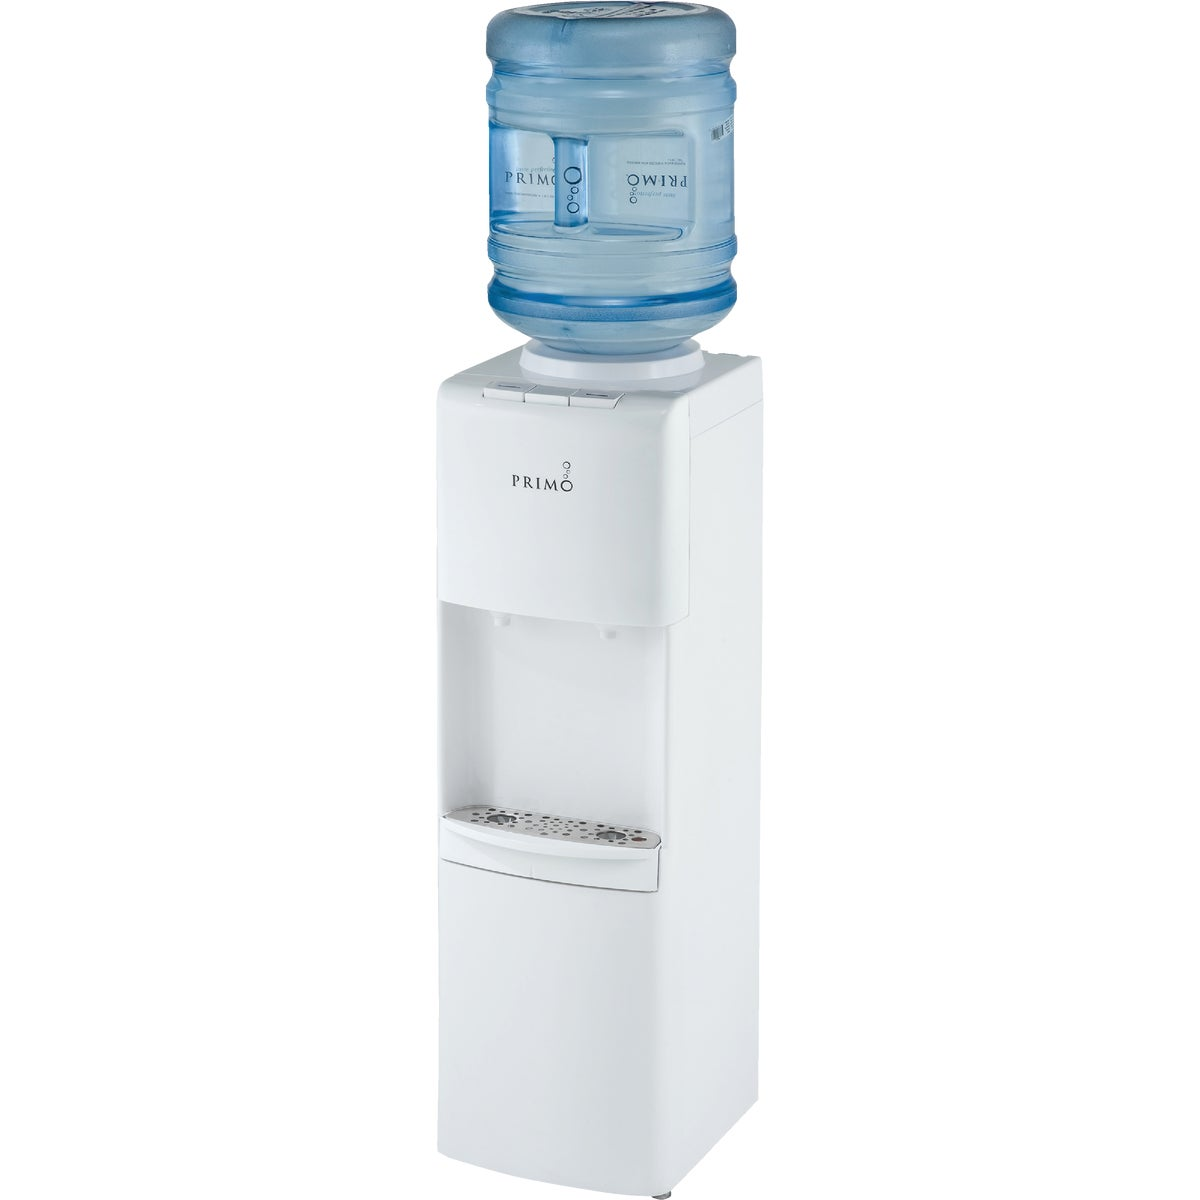 ROOM/COLD WATER COOLER - 601085 by Primo Water Corp